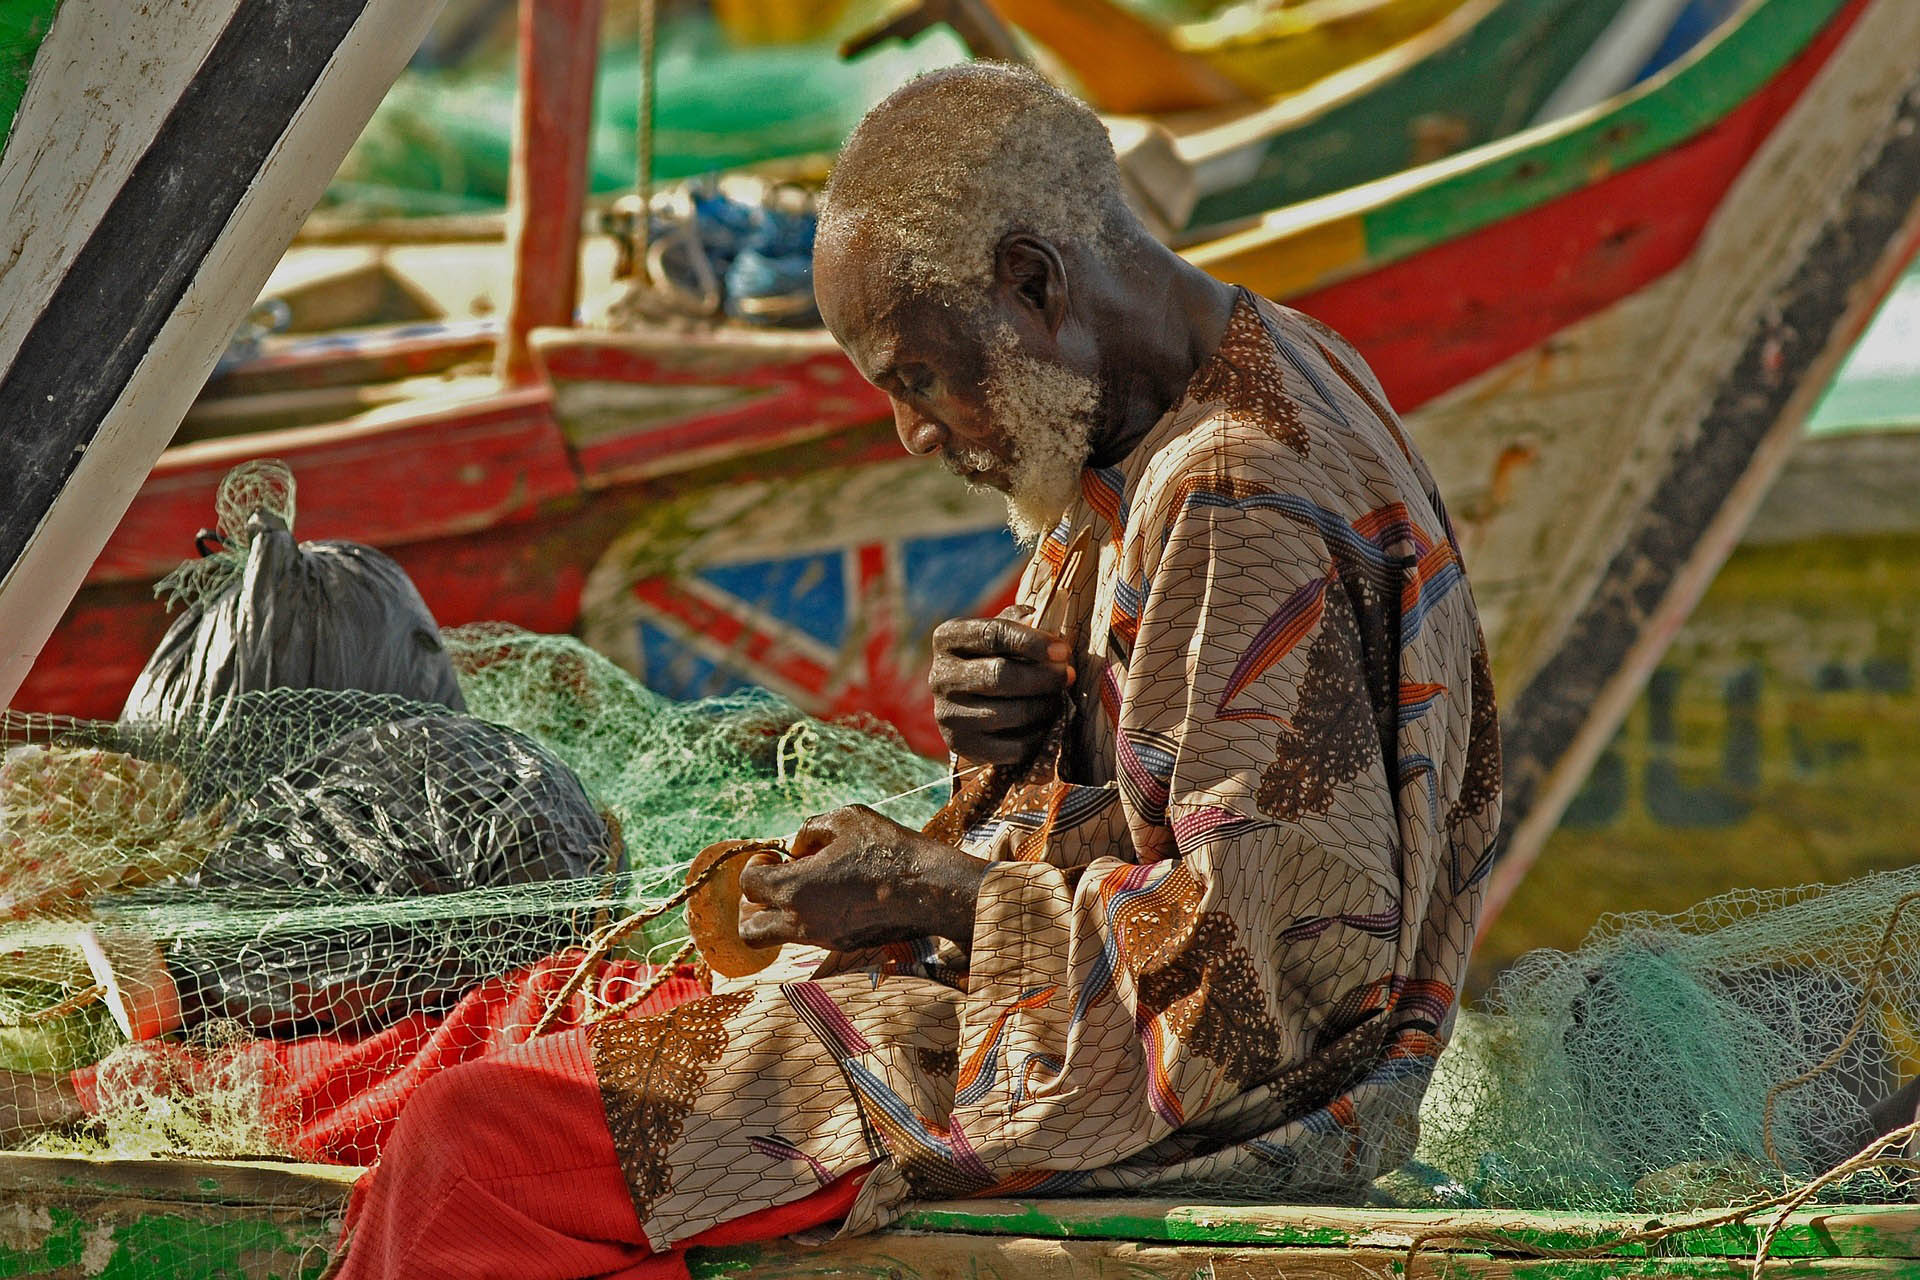 A Ghanaian fisherman repairing a net while sitting on his boat on the beach.